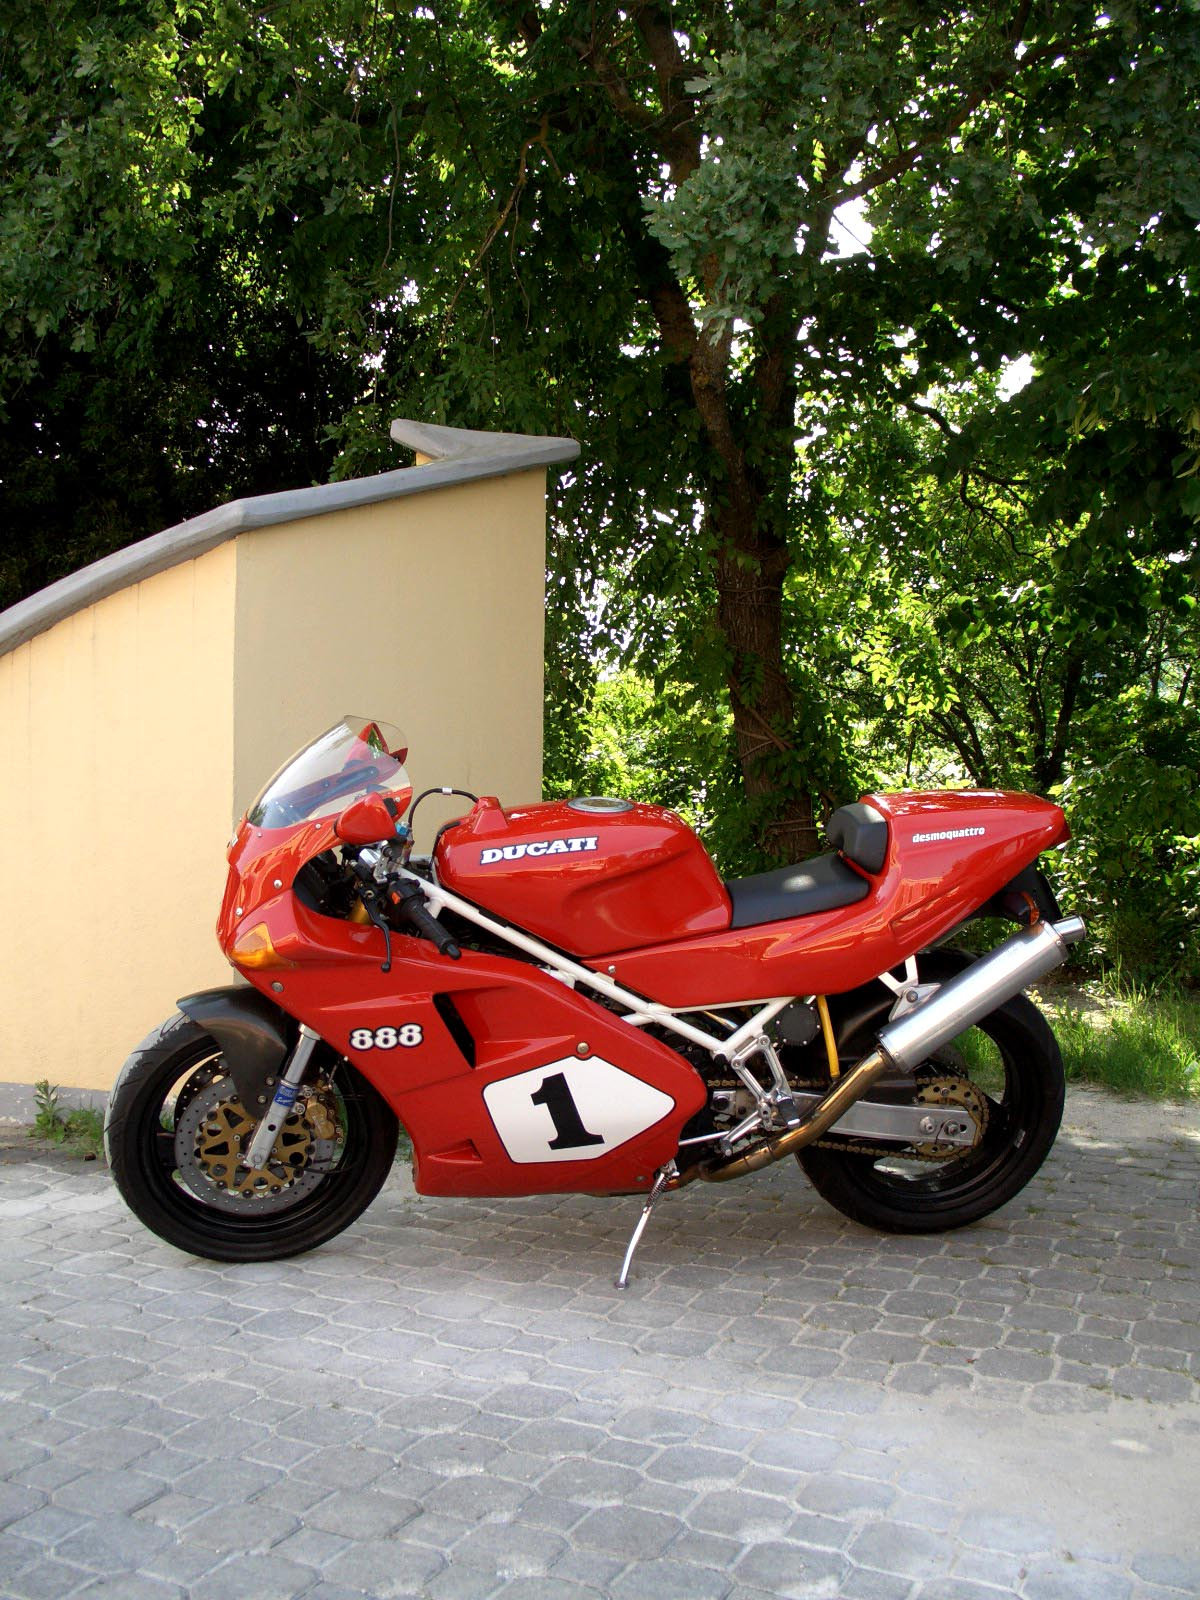 888 reasons to buy an old Ducati